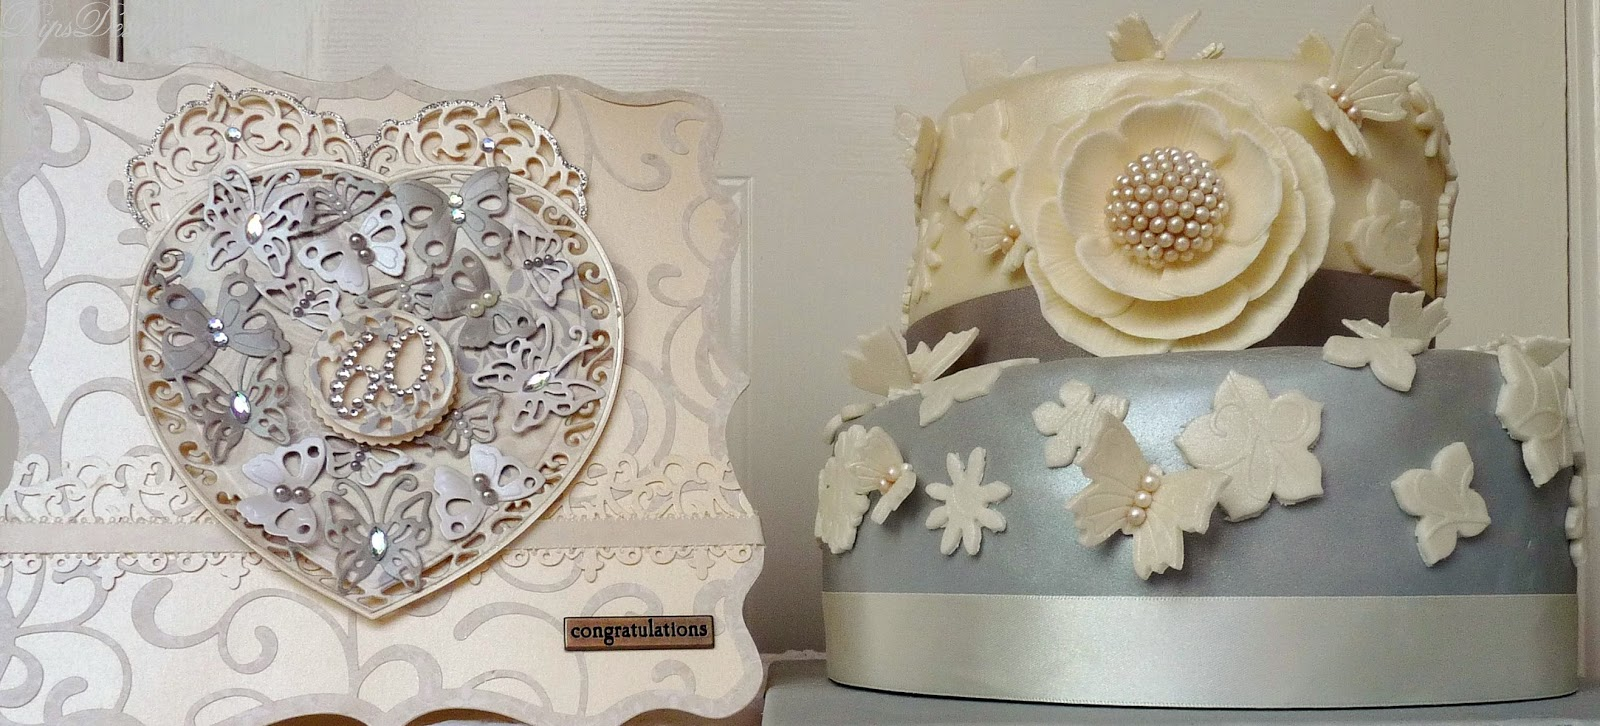 Platinum & Ivory Diamond Wedding Anniversary Cake and Card